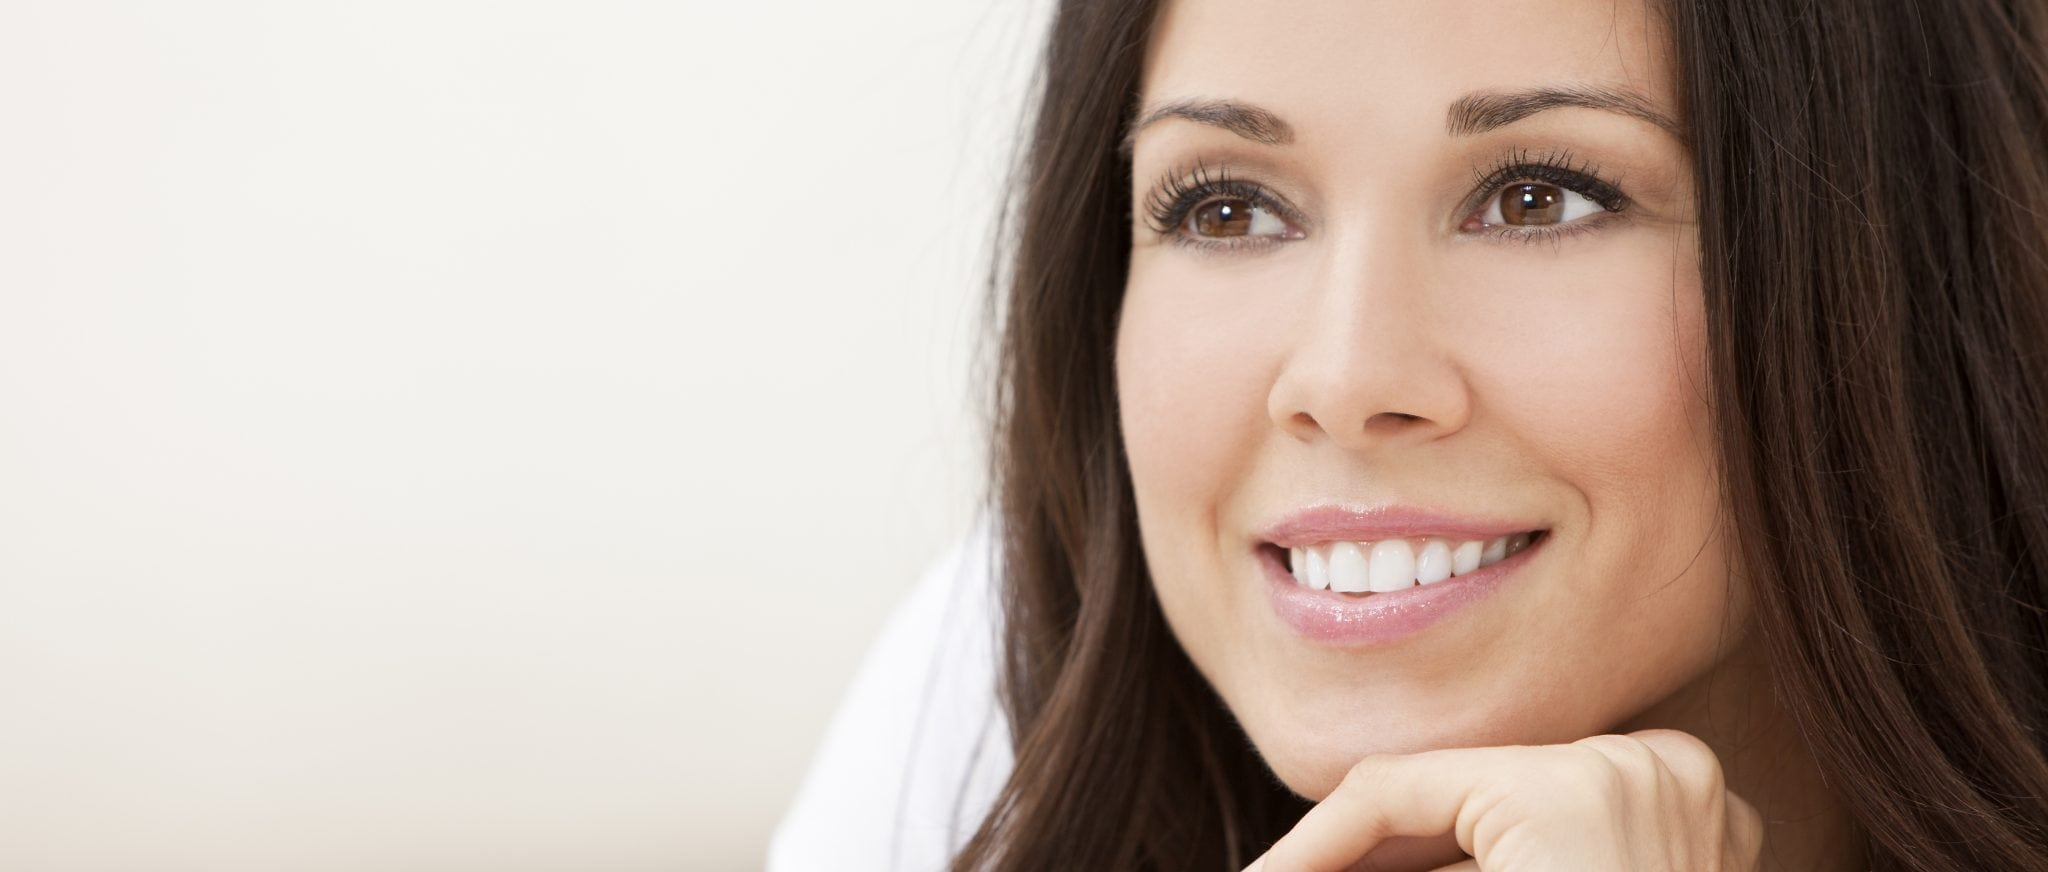 Women smiling women with perfect smile and white teeth